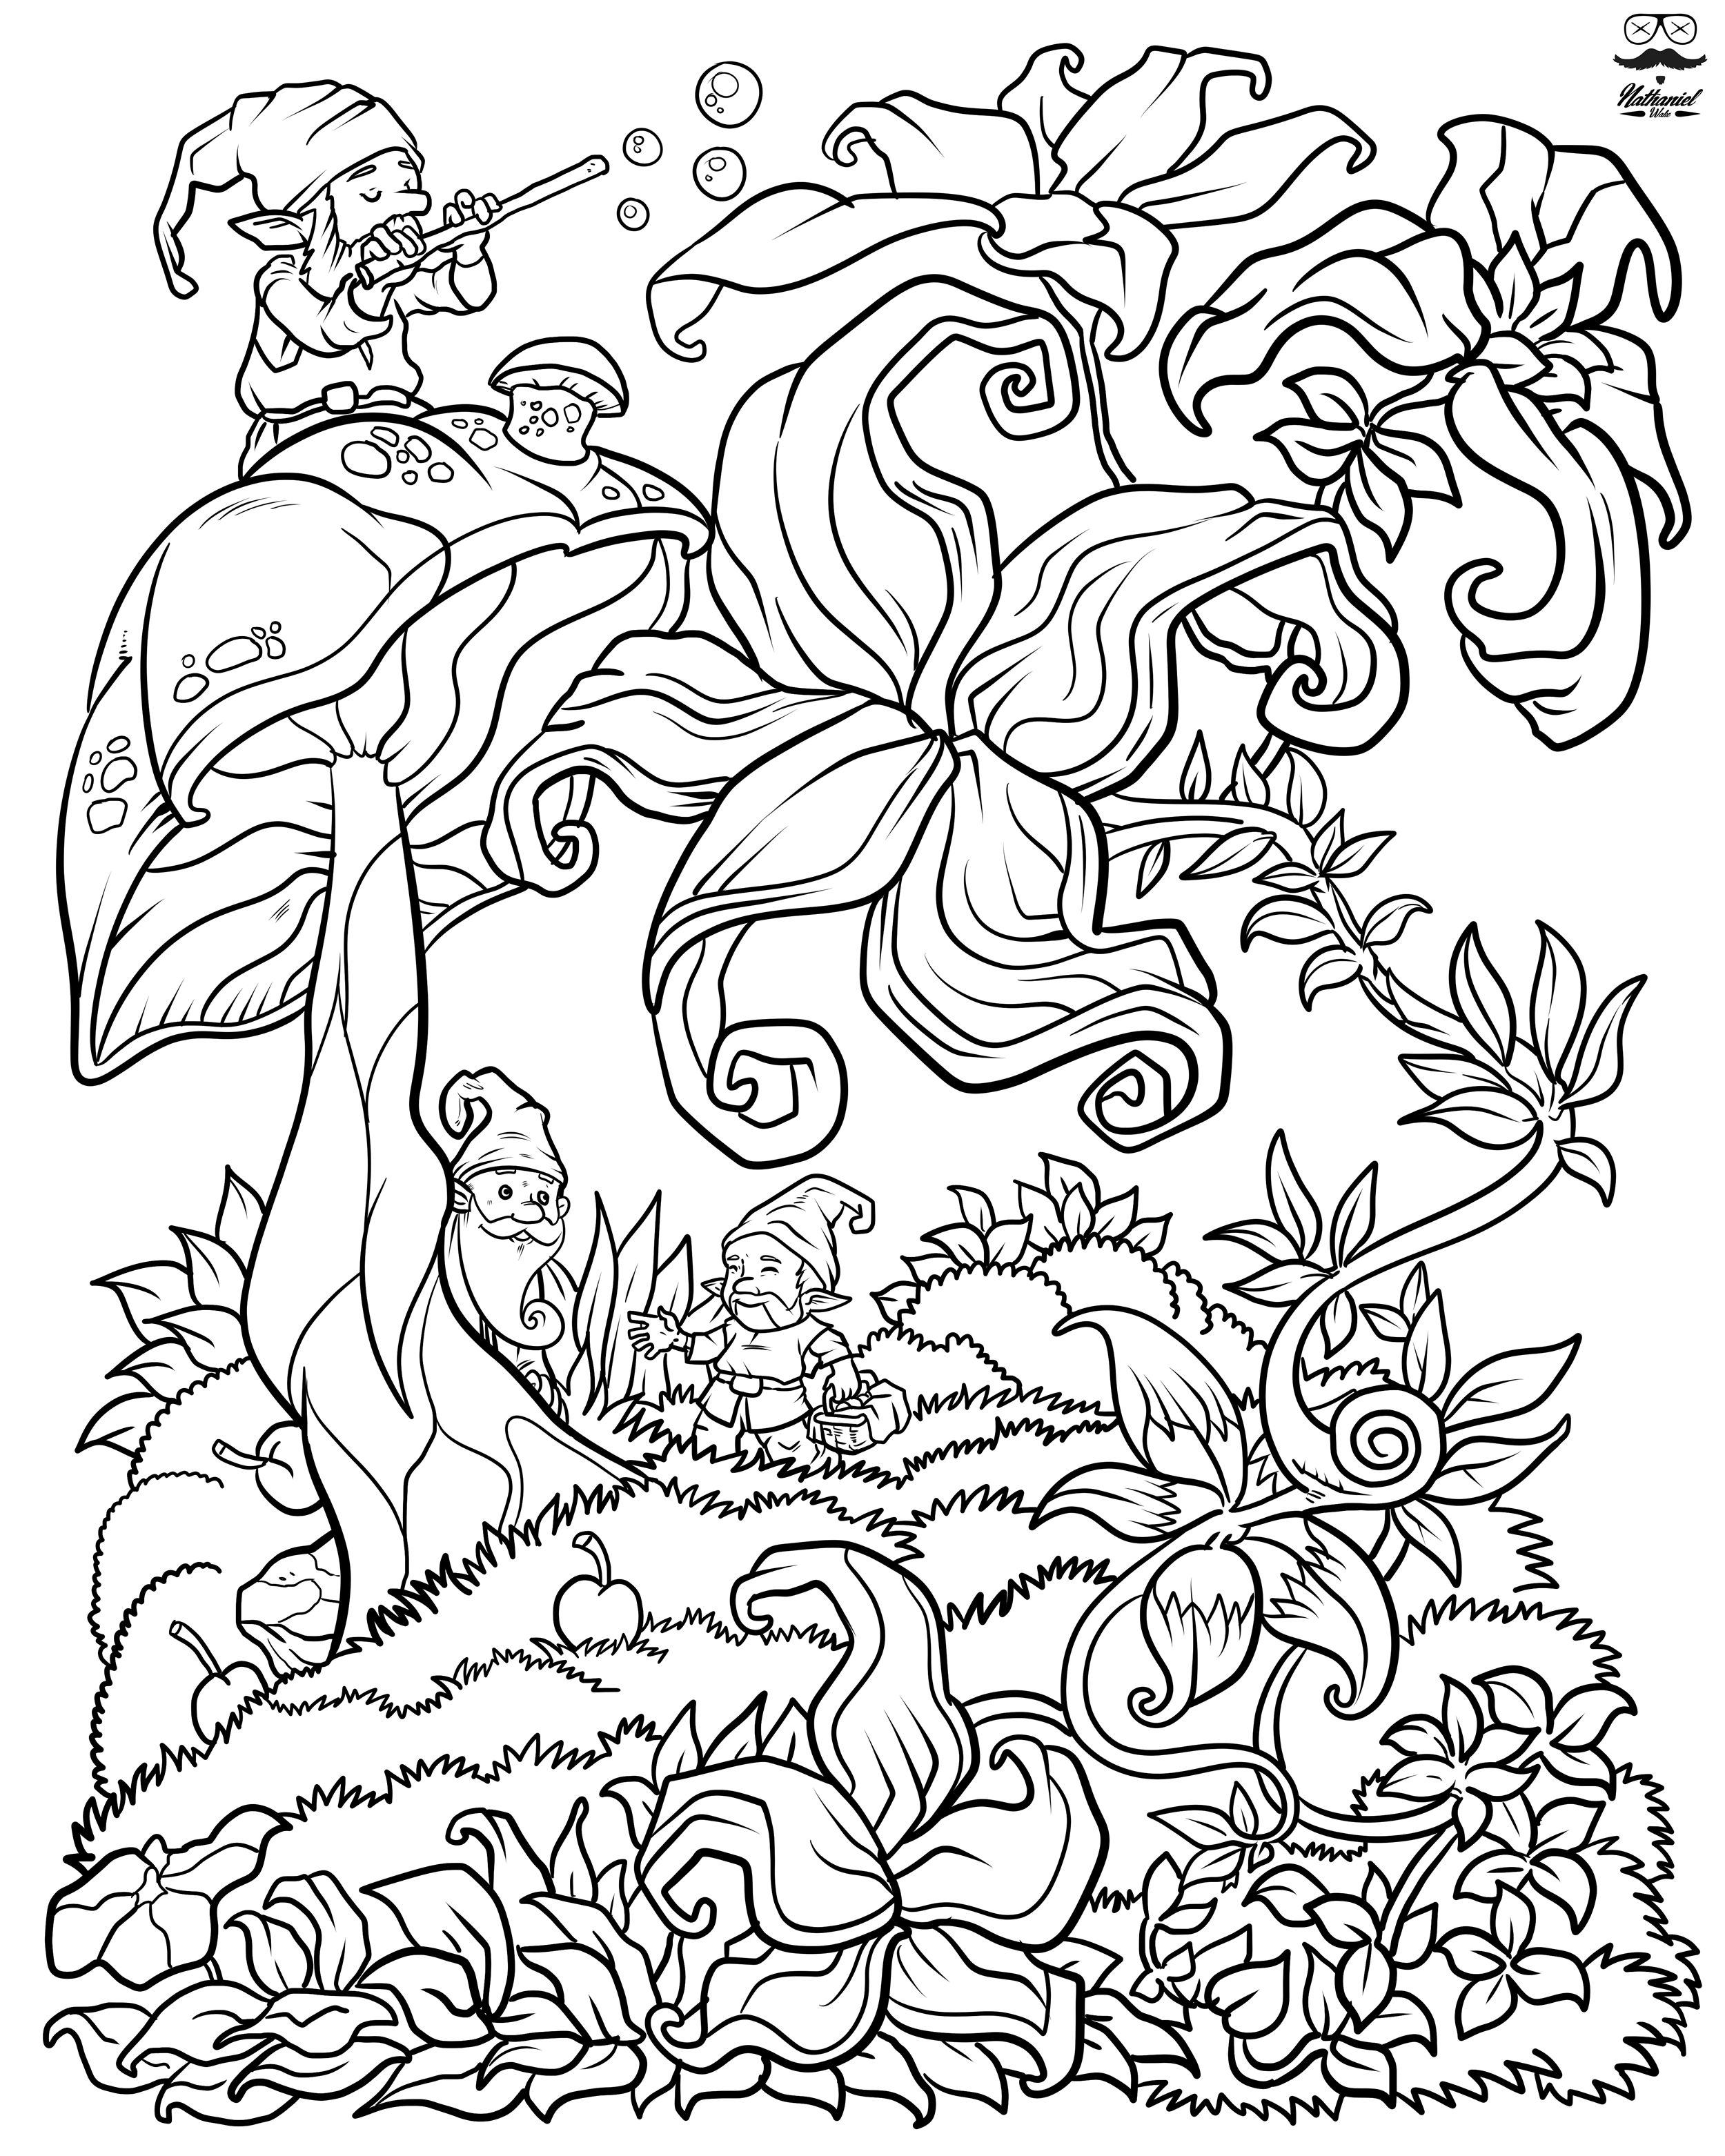 adult coloring pages free free coloring book pages for adults pages adult coloring free